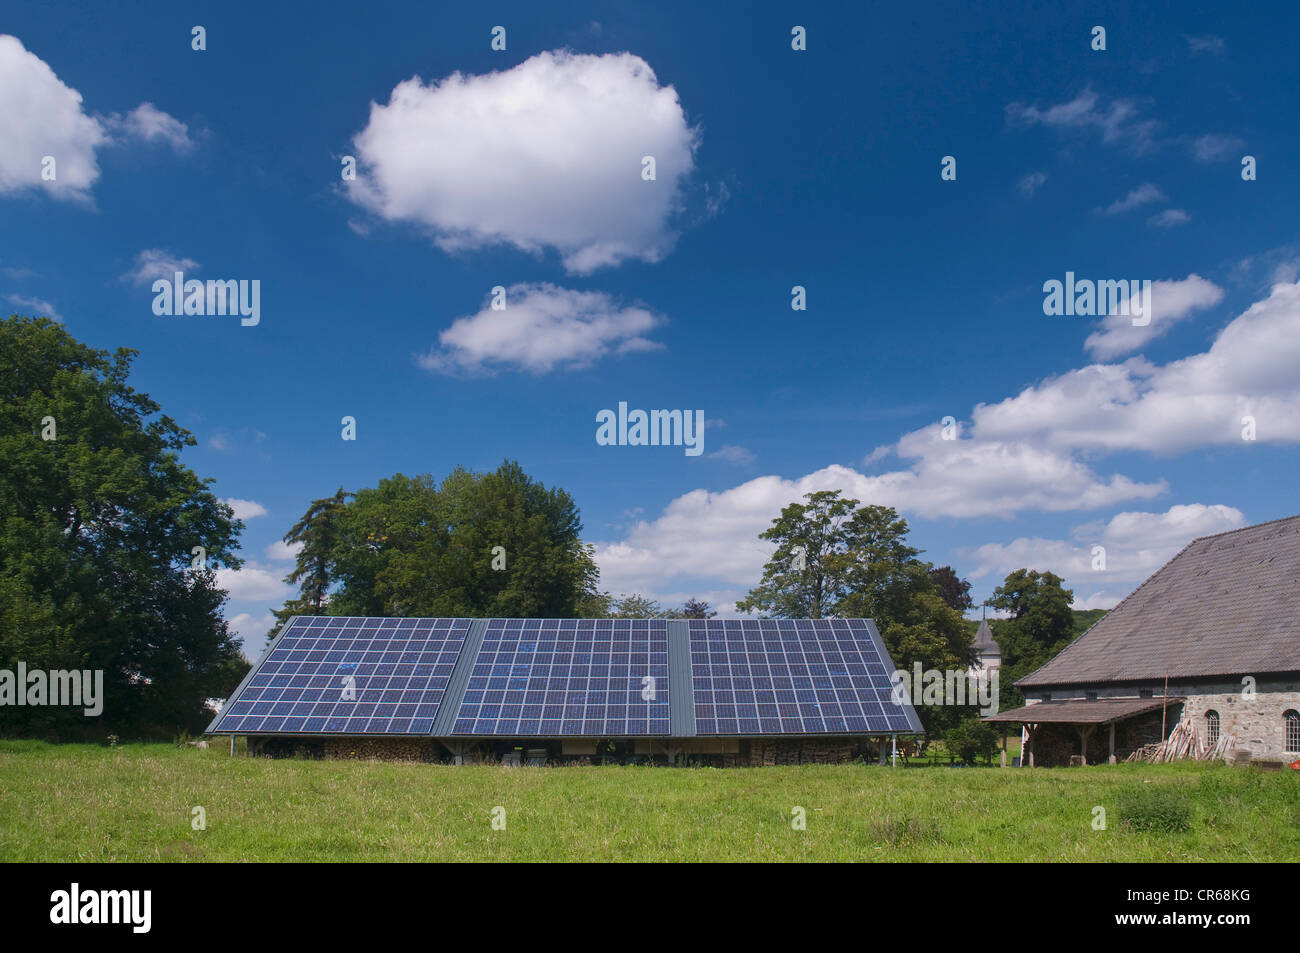 Solar panels on the roof of a shed, next to a farm building, PublicGround - Stock Image